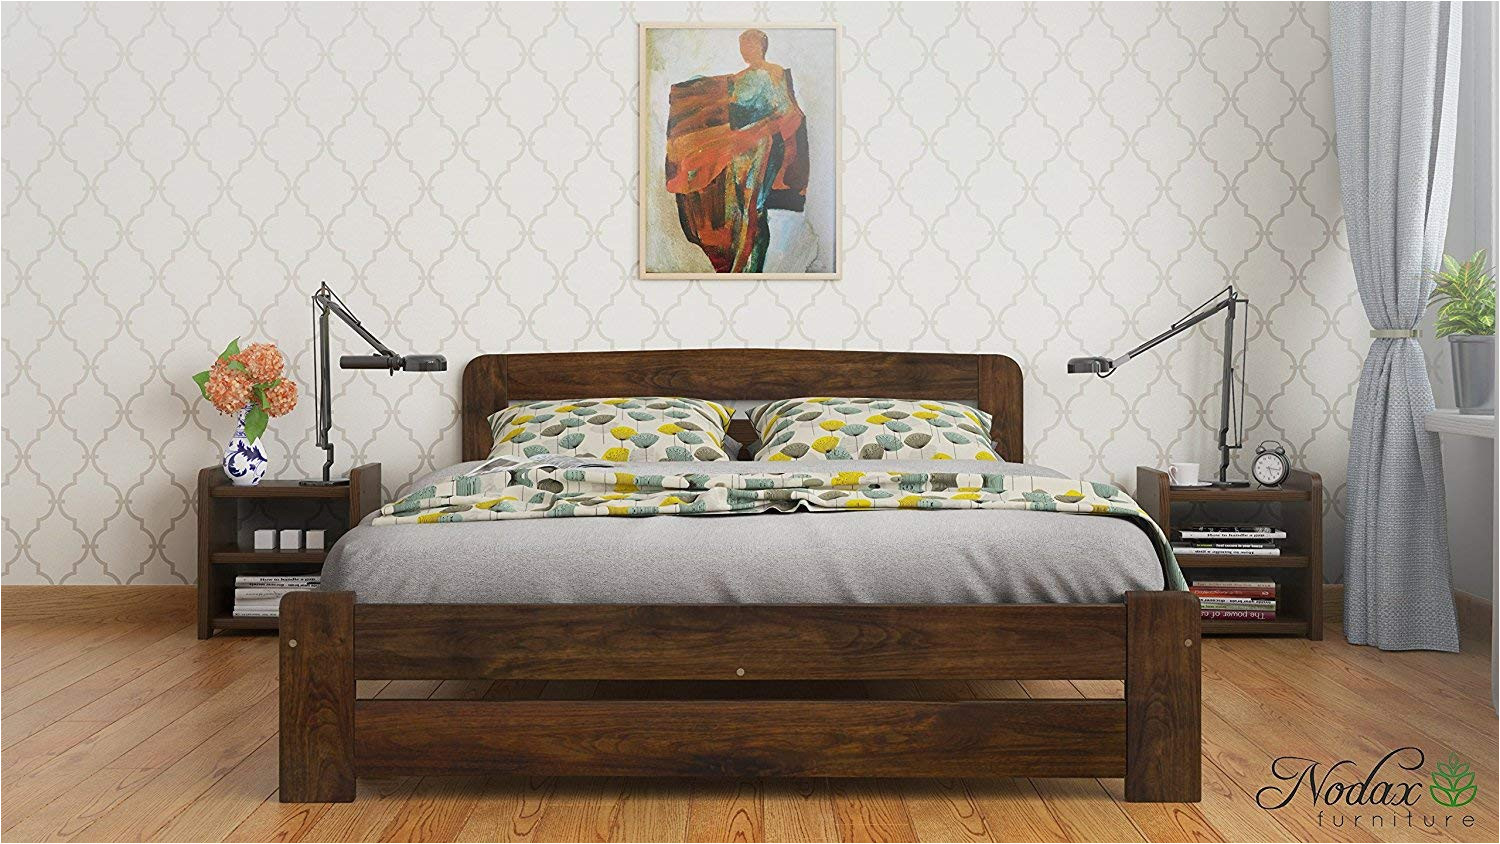 new super king size solid wooden bedframe f1 with slats and extra four supportive legs 6ft walnut amazon co uk kitchen home